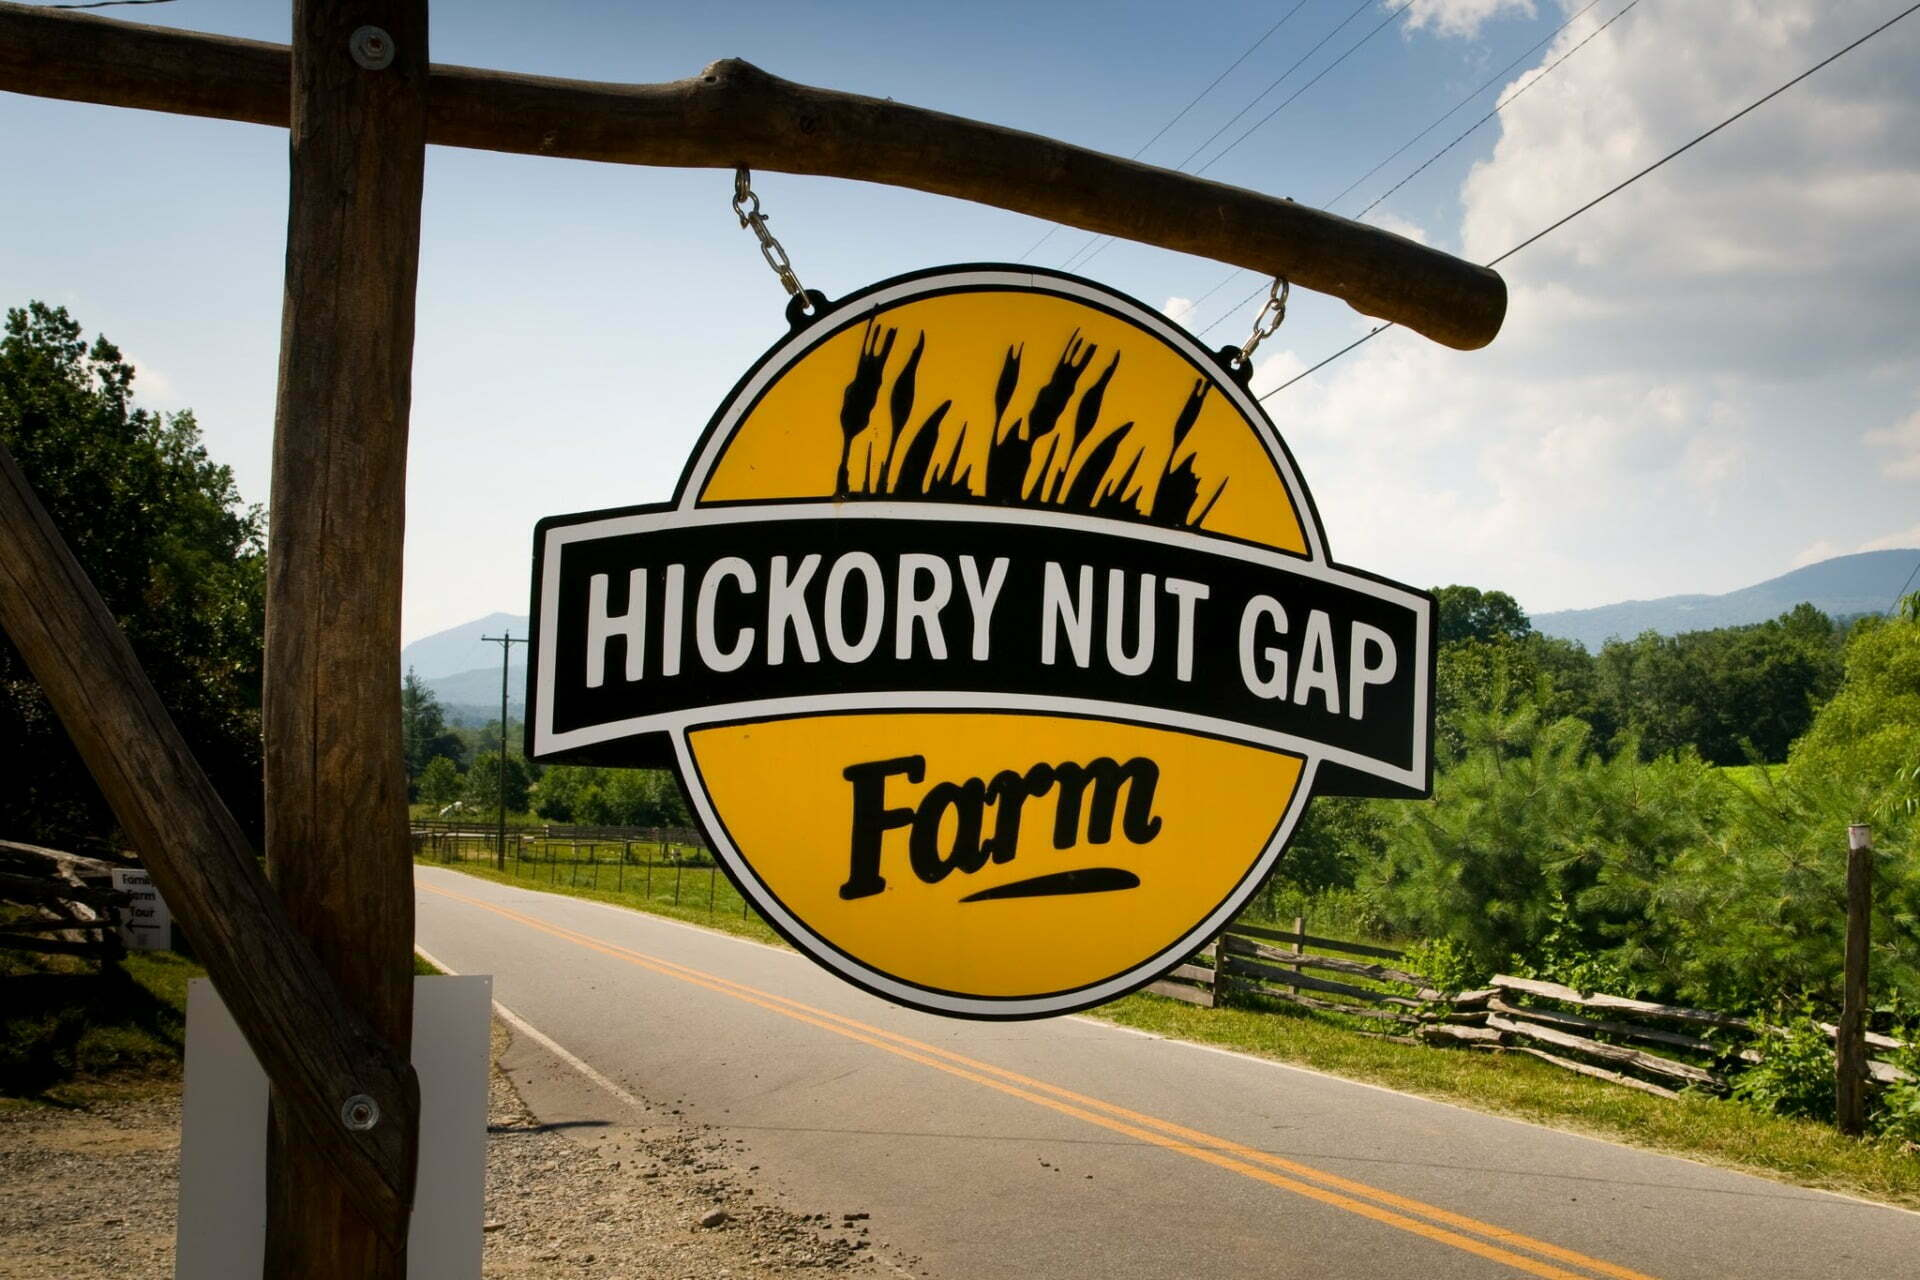 HNG farm sign too